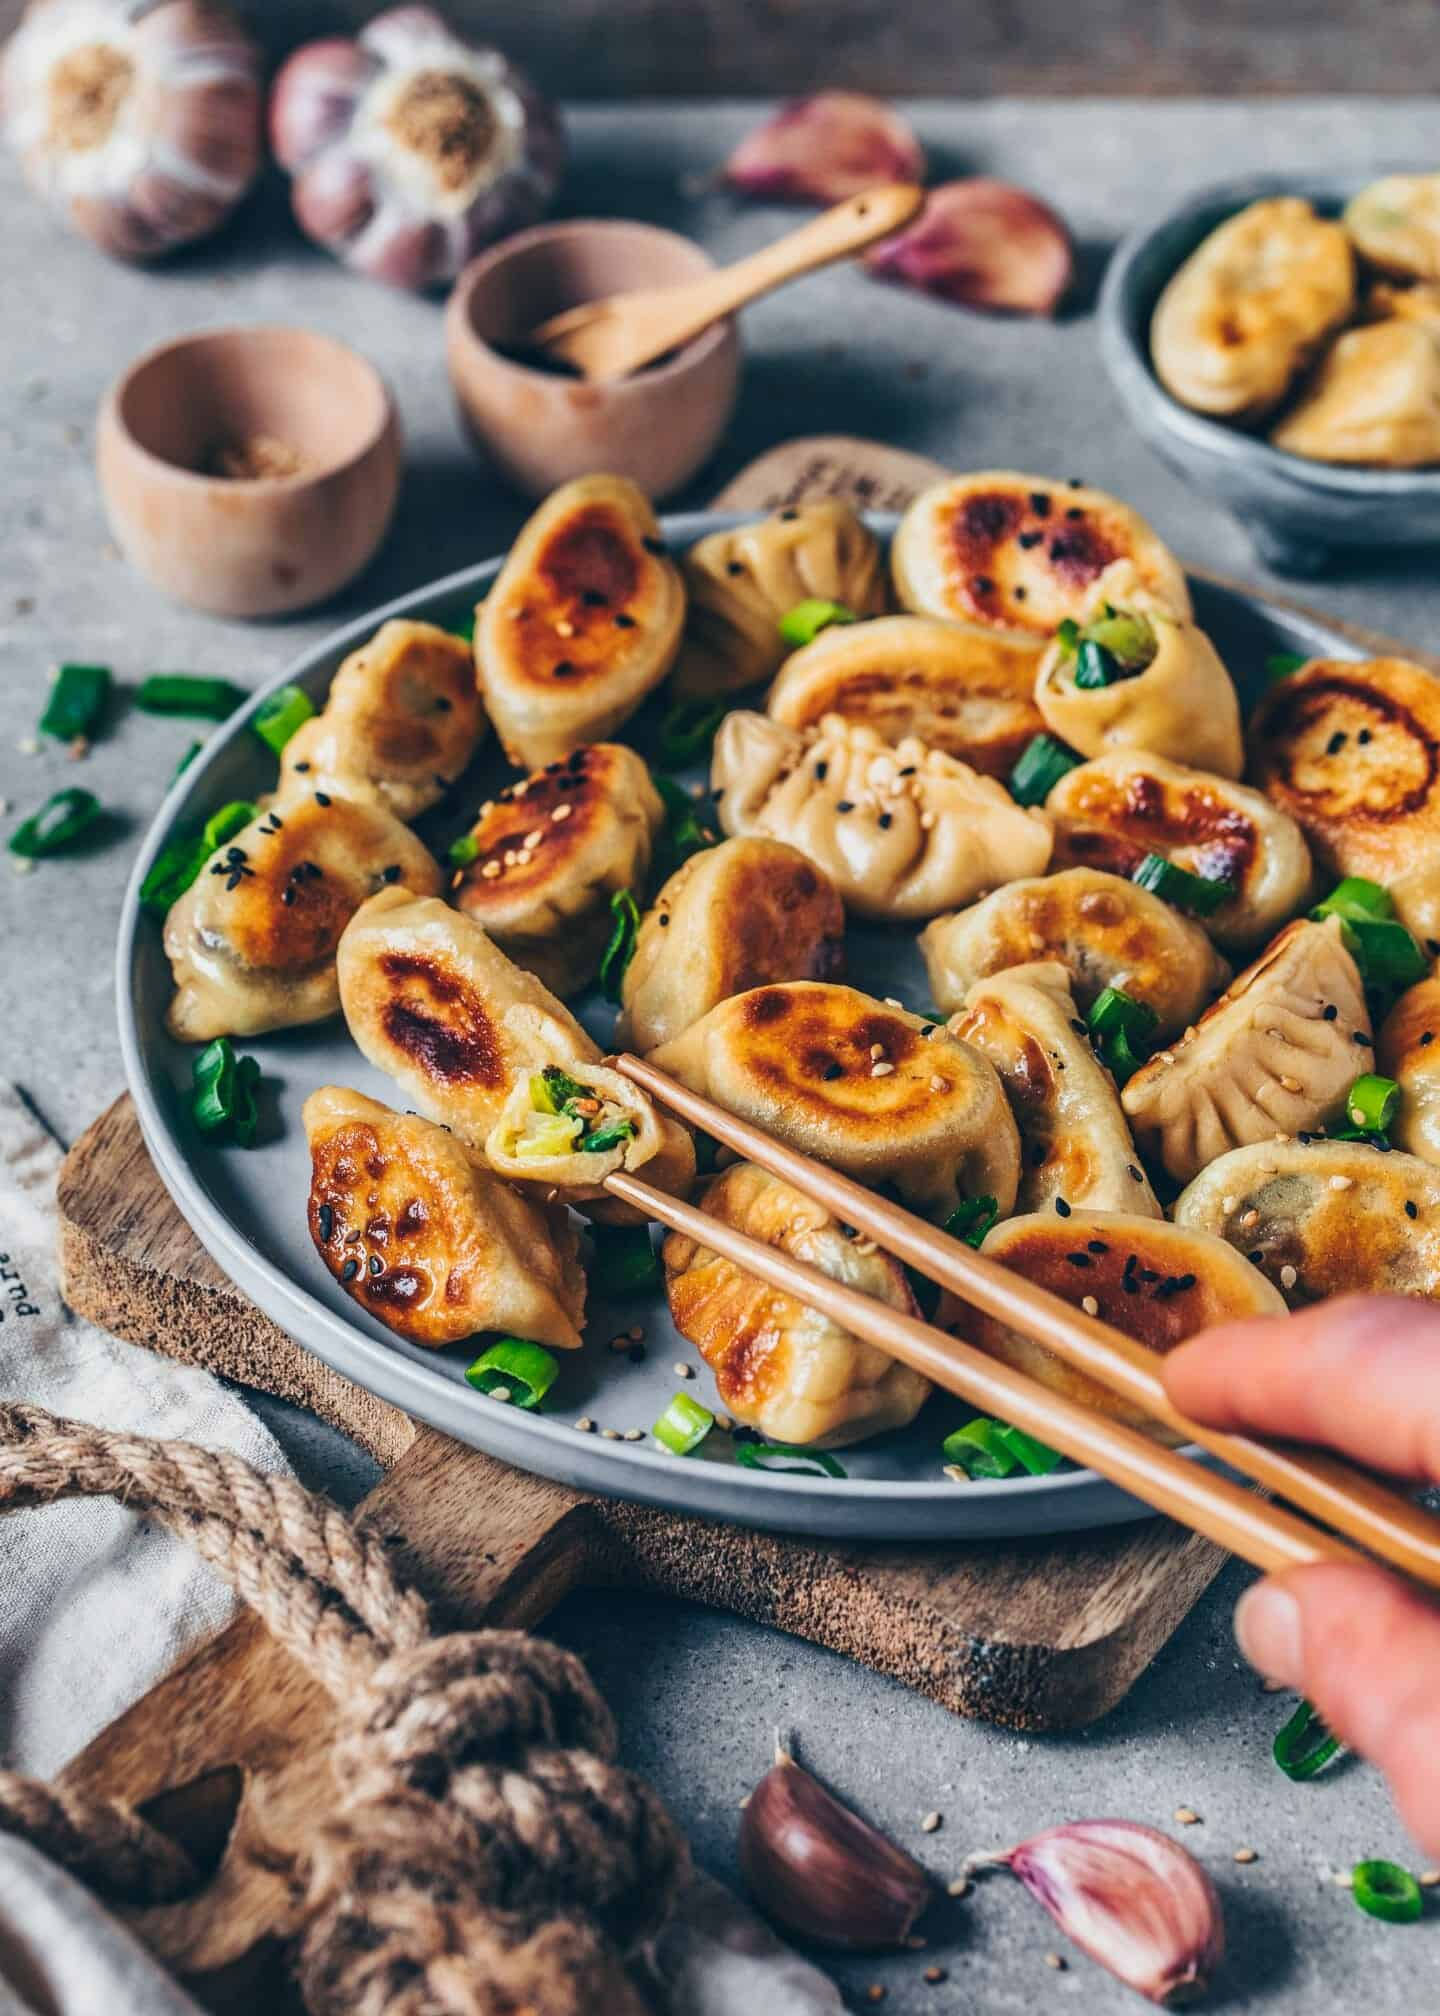 Crispy pan-fried Vegan Gyoza (Jiaozi) are Japanese Vegetable Dumplings, also called Potstickers. They're made of simple Homemade Dumpling Wrappers and filled with healthy veggies. This recipe is fairly easy and includes step-by-step instructions.